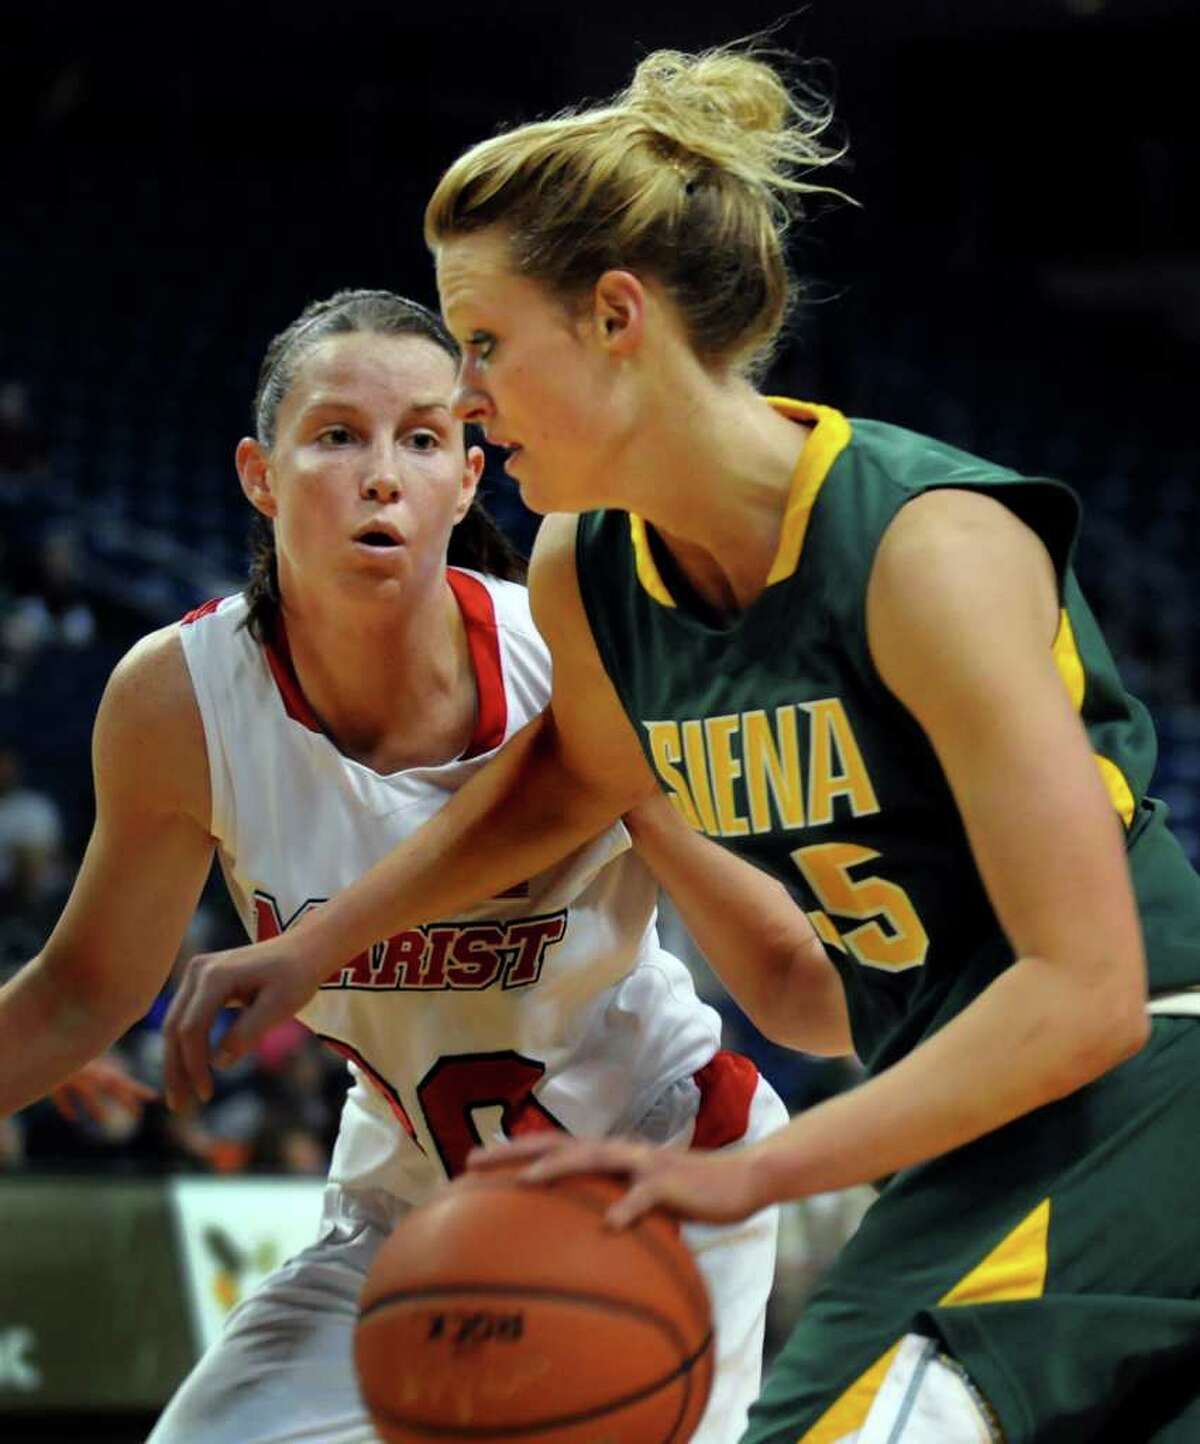 Siena's Maja Gerlyng (35), right, controls the ball as Marist's Erica Allenspach (30) defends during their basketball game at the MAAC Championships on Saturday, March 5, 2011, at Webster Band Arena at Harbor Yard in Bridgeport, Conn. (Cindy Schultz / Times Union)